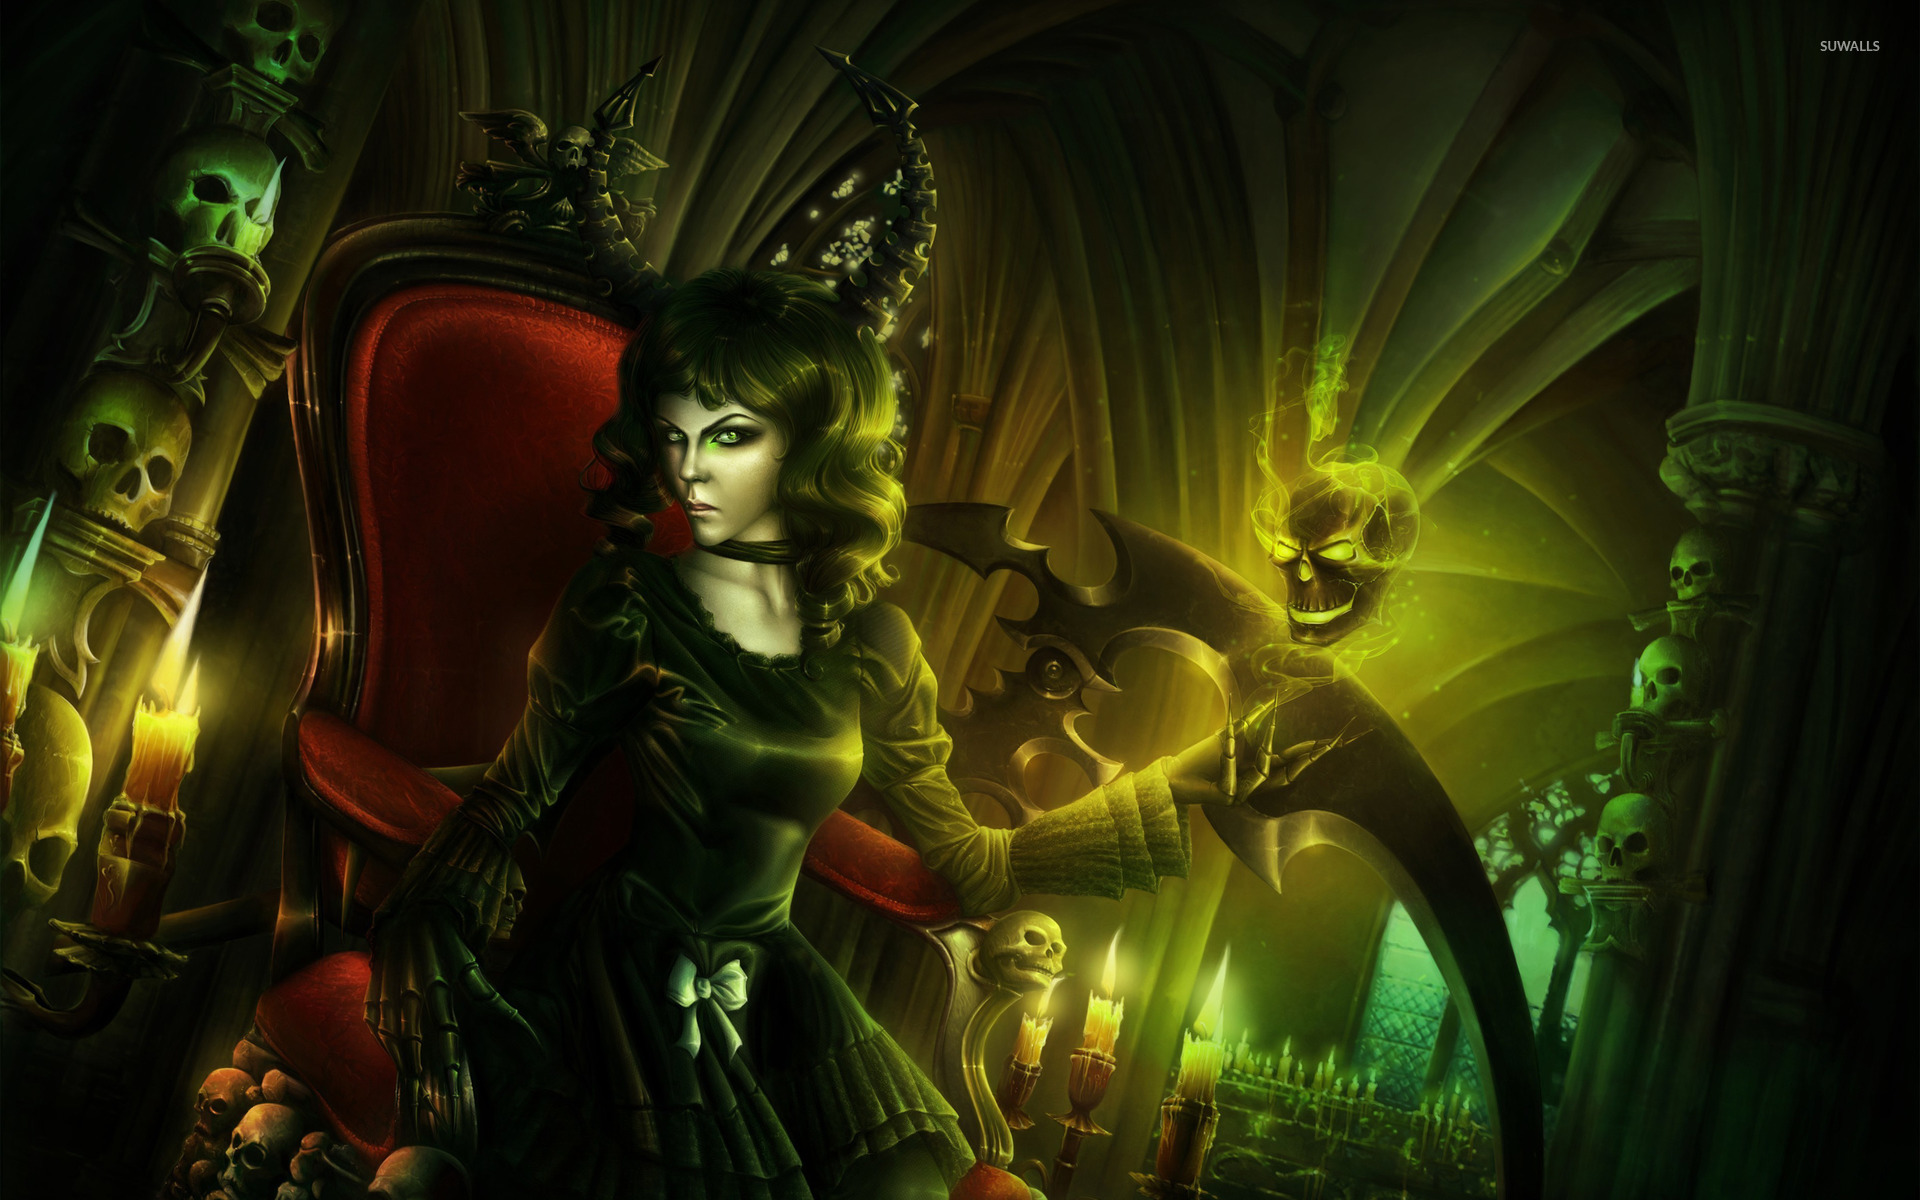 Evil witch wallpaper   Fantasy wallpapers   23246 1920x1200